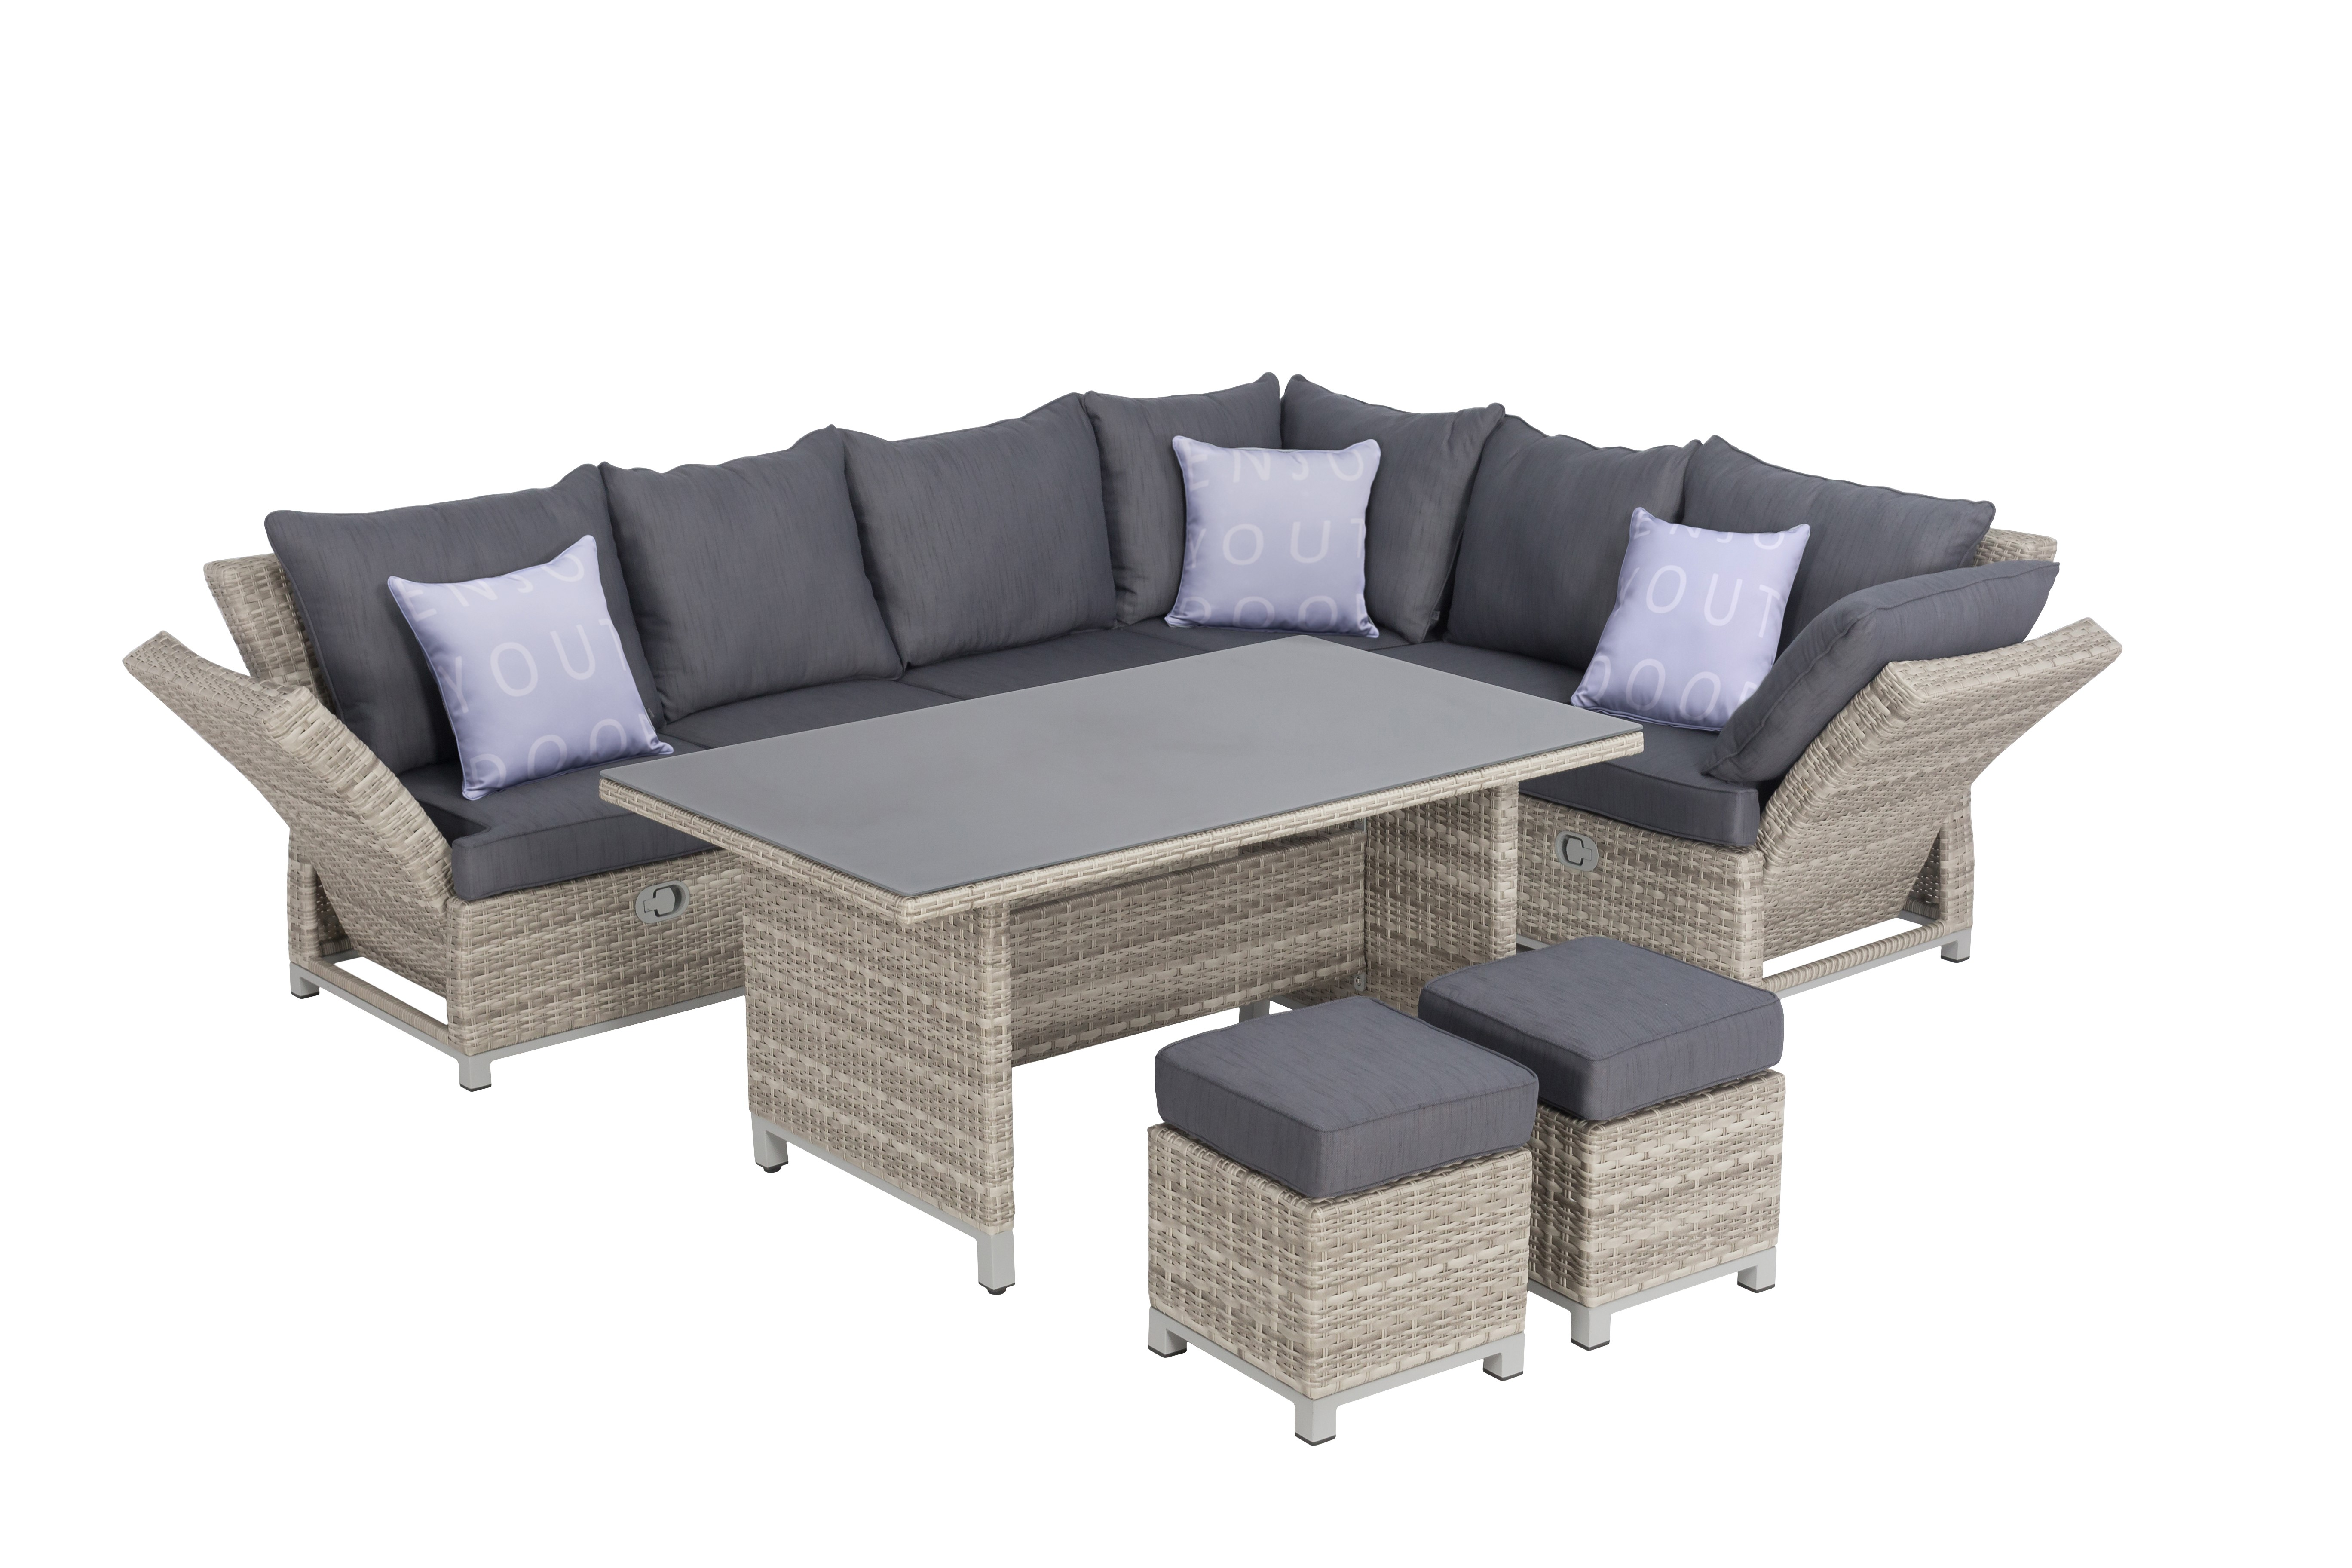 santa cruz polyrattan ecklounge gartenm bel sitzgruppe grau lounge m bel garten. Black Bedroom Furniture Sets. Home Design Ideas